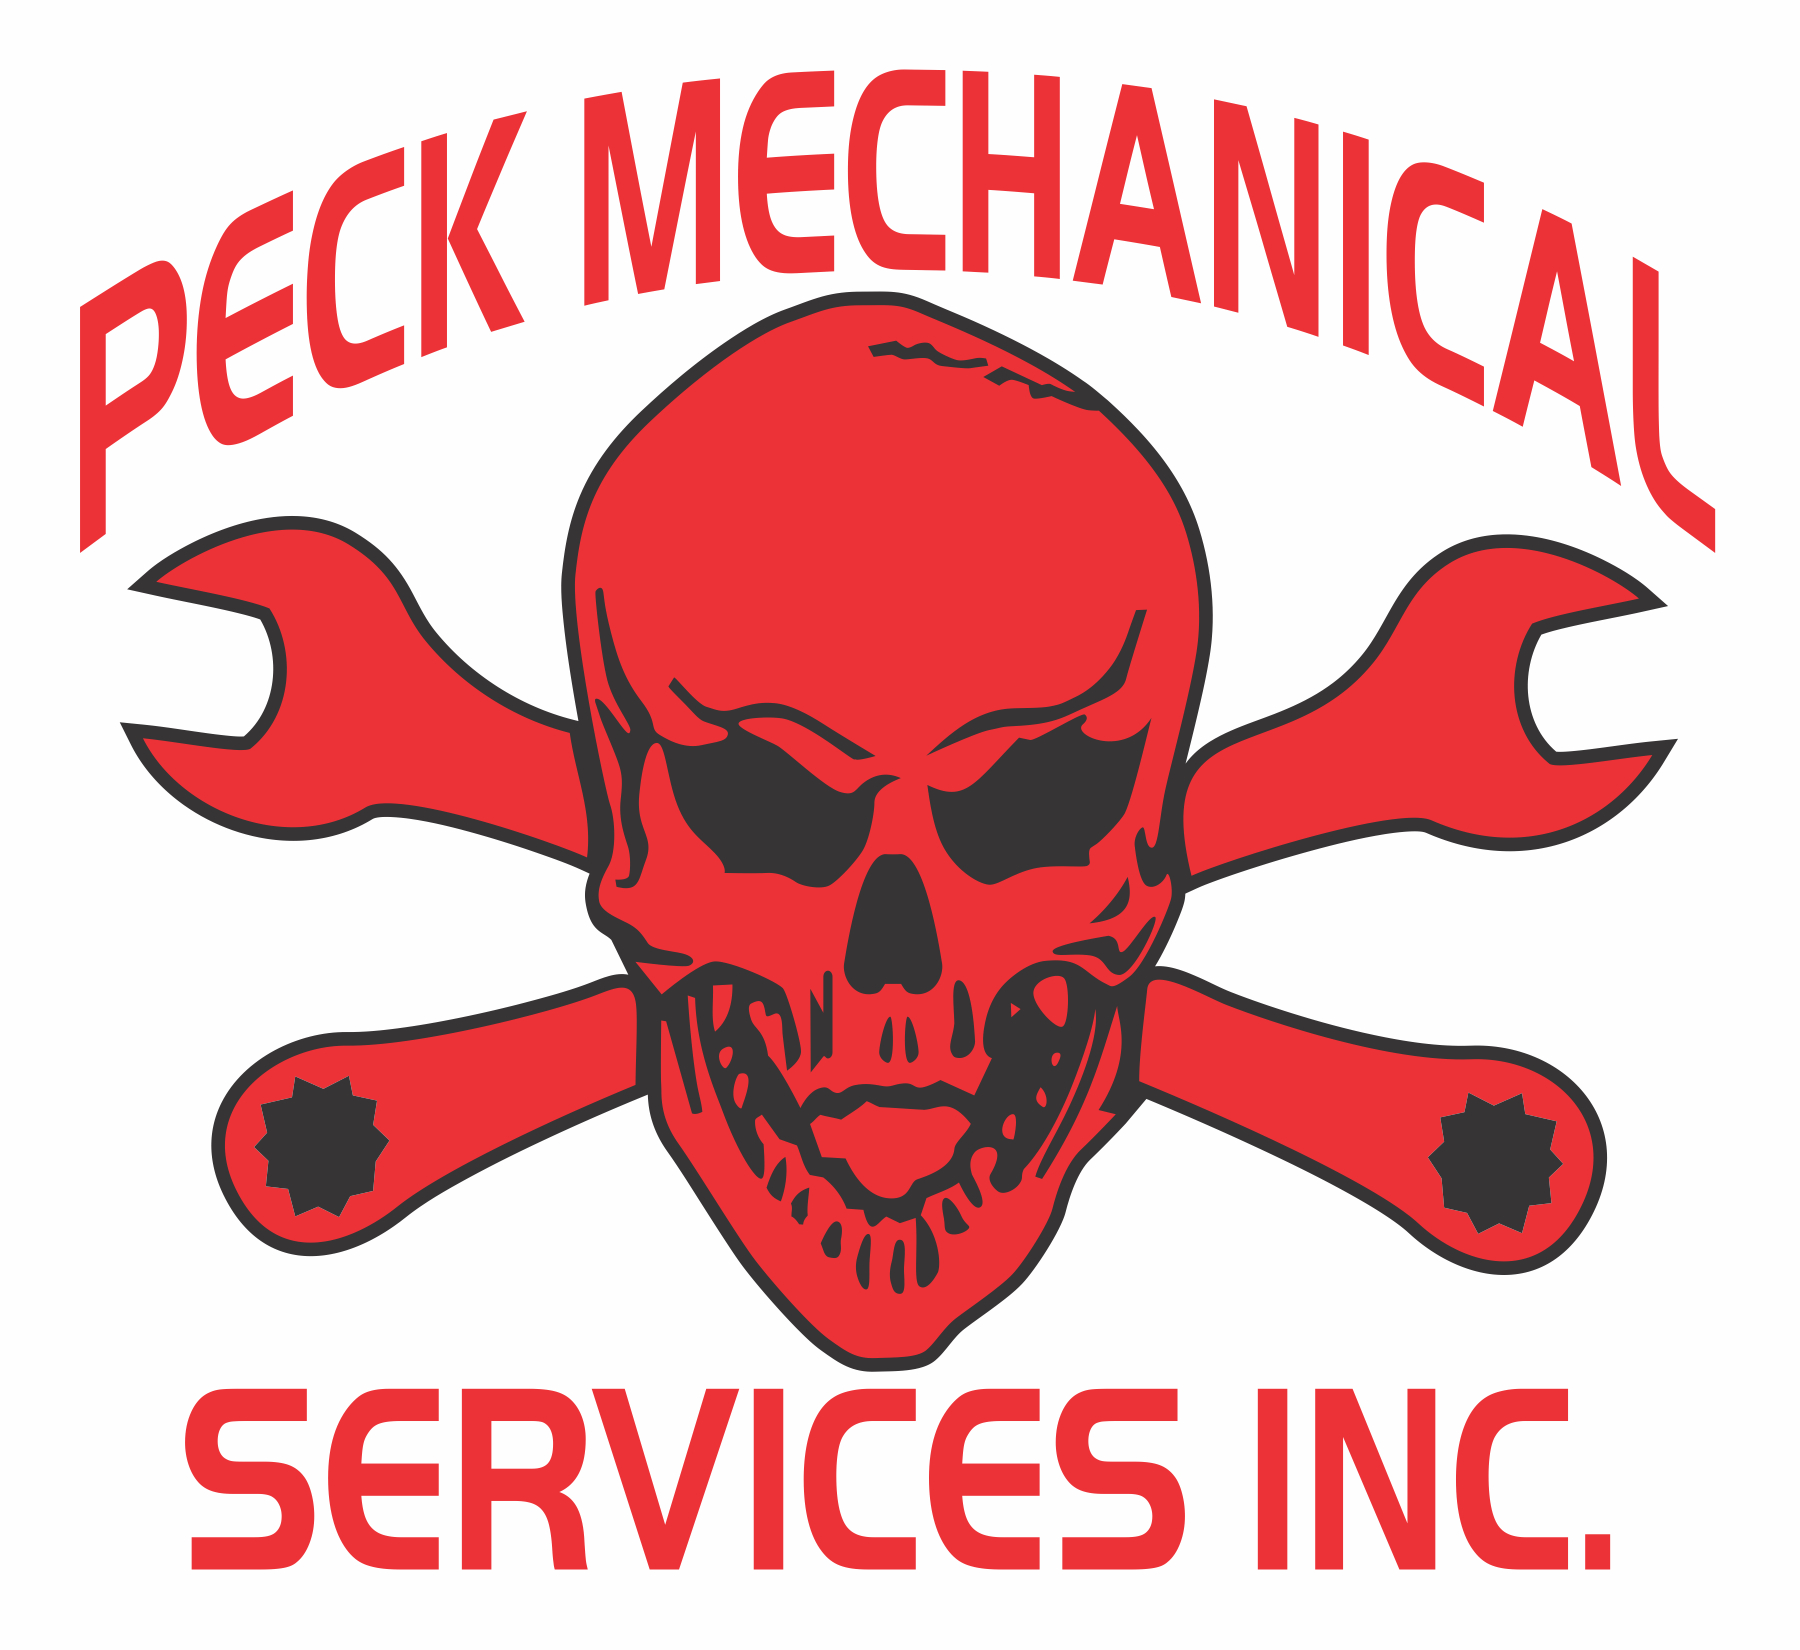 Peck Mechanical1.jpg